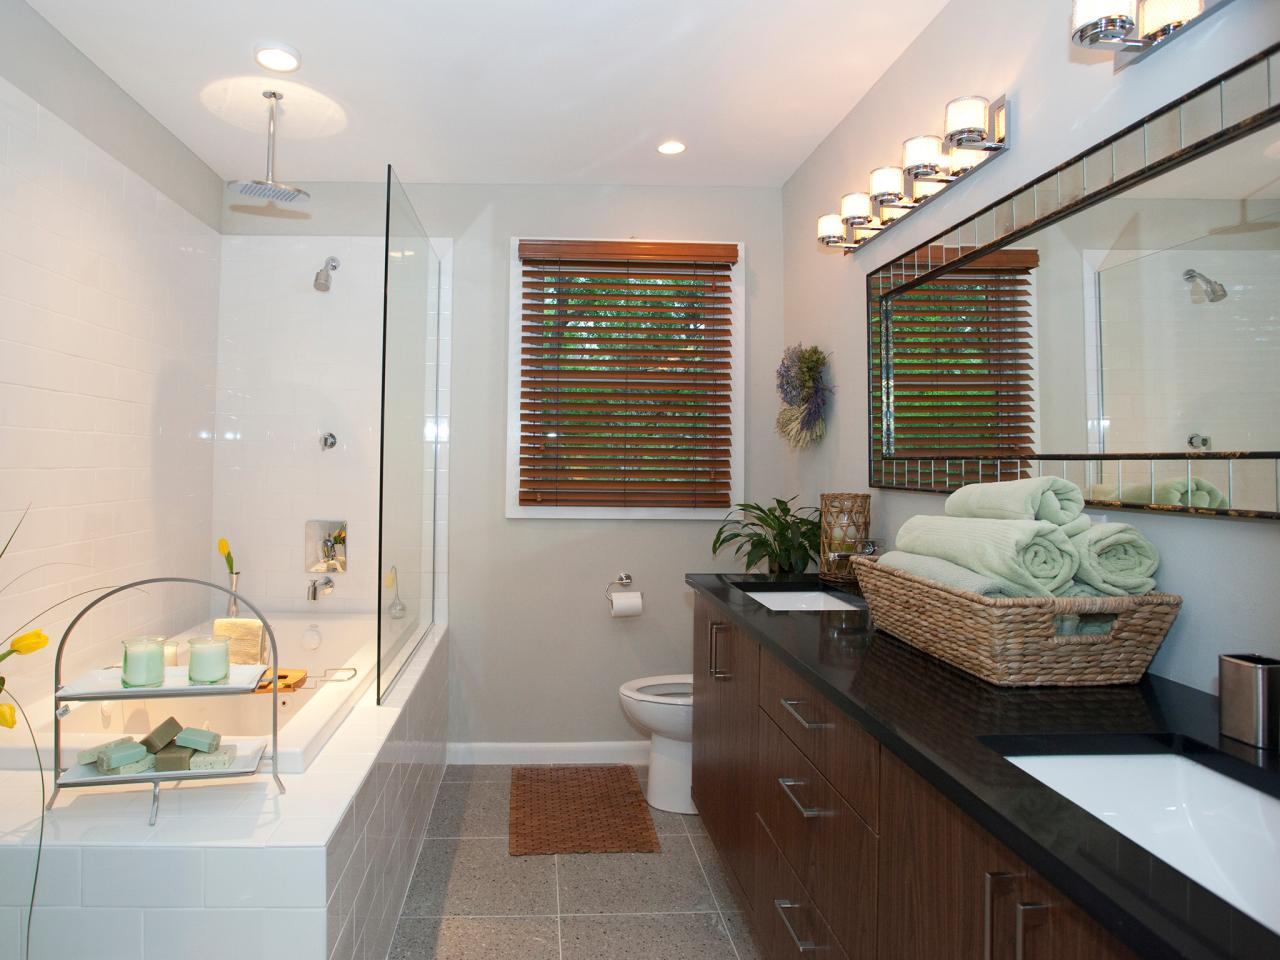 Bathroom Design Ideas And Tips: Modern Bathroom Design Ideas: Pictures & Tips From HGTV